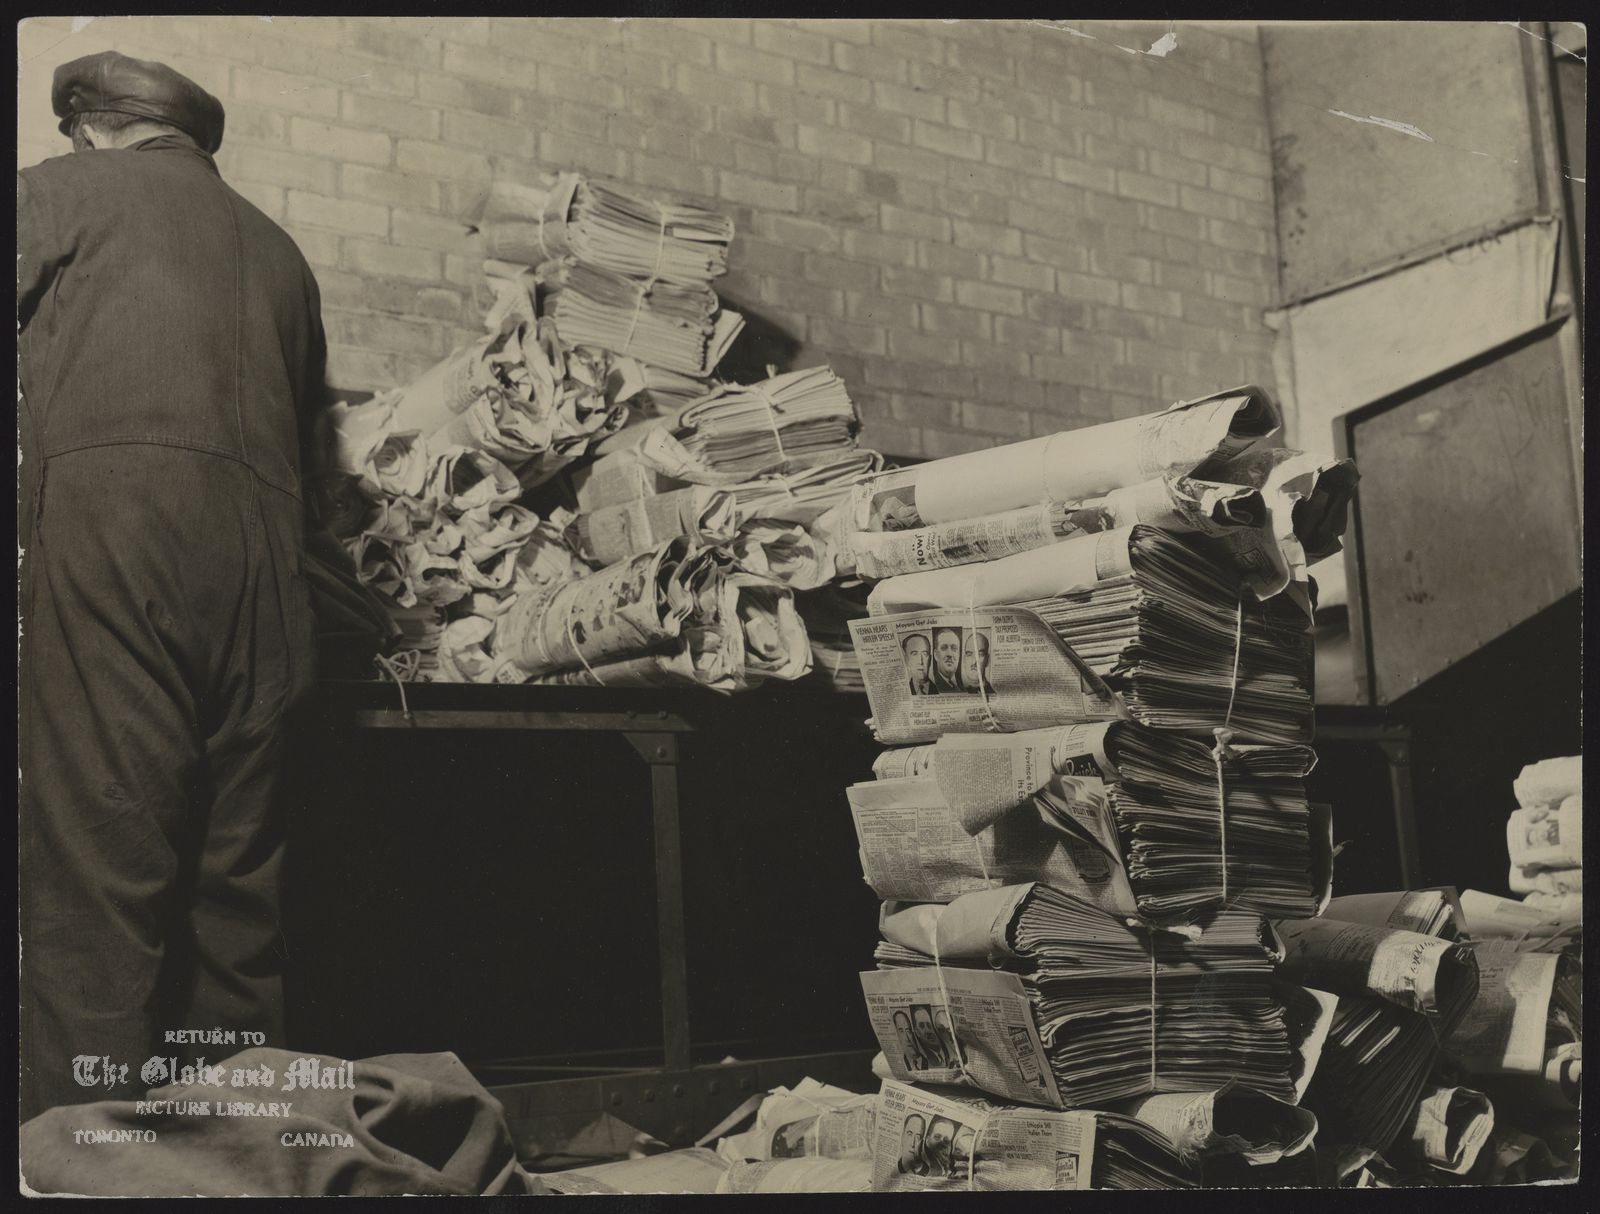 TORONOTO GLOBE AND MAIL - HISTORICAL MISCELLANEOUS [Bundling newspapers in the Mailing Room of The William H. Wright Building, the new home of The Globe and Mail, May 1938. Credit: The Globe and Mail.]